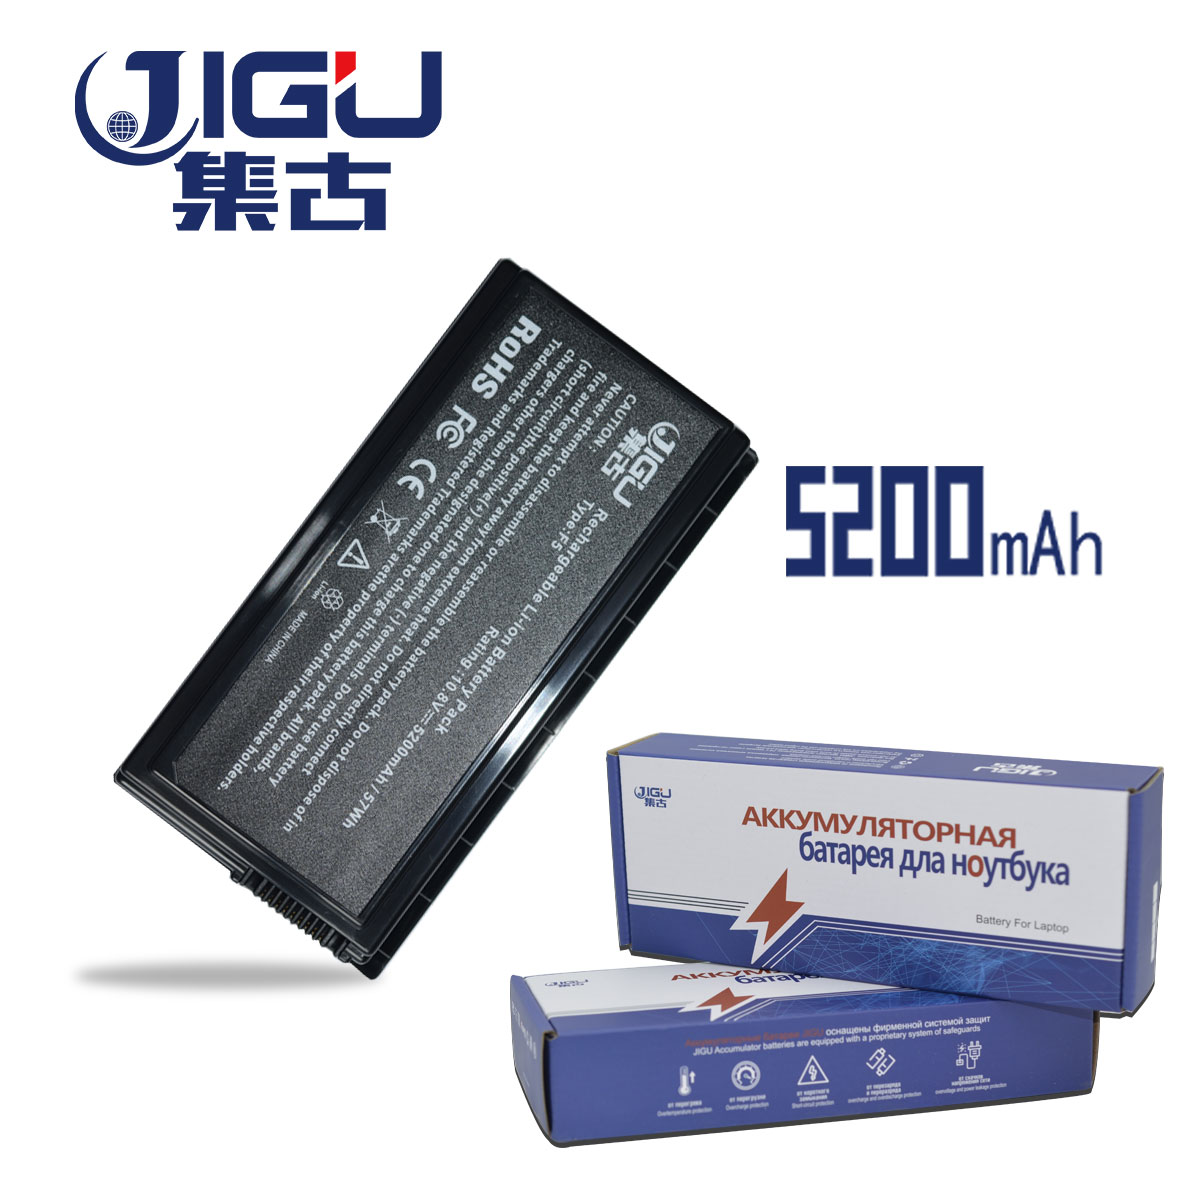 JIGU High Capcity New Laptop Battery For ASUS X59 X59G X59GL X59S X59SL X59SR A32-F5JIGU High Capcity New Laptop Battery For ASUS X59 X59G X59GL X59S X59SL X59SR A32-F5